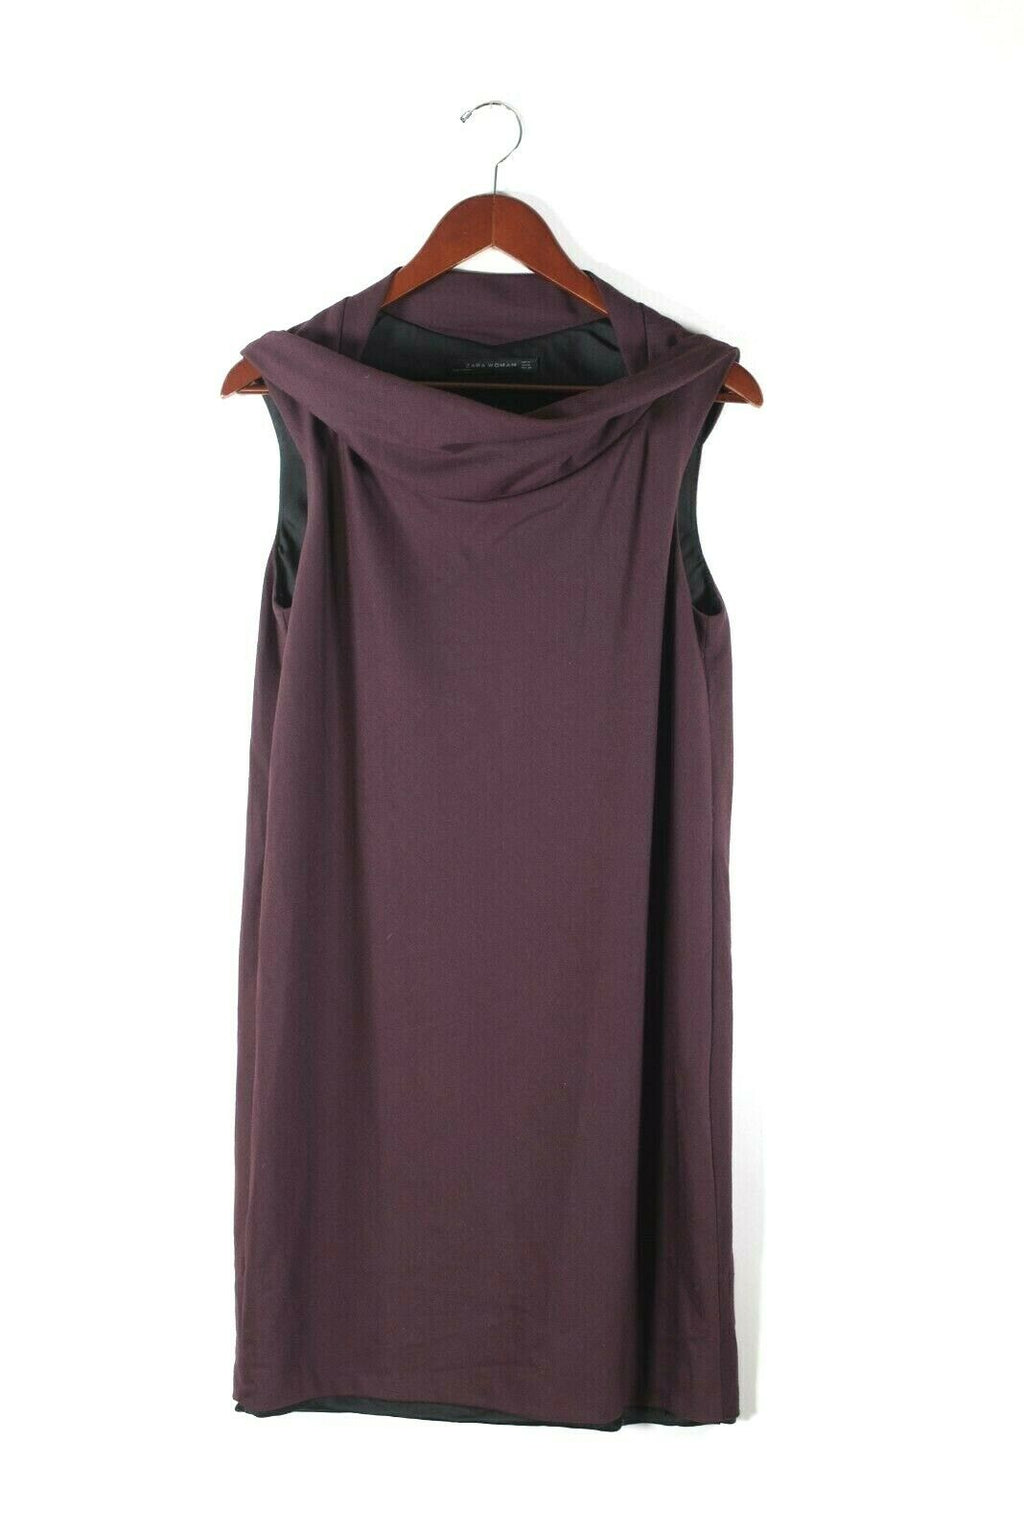 Zara Medium Burgundy Dress